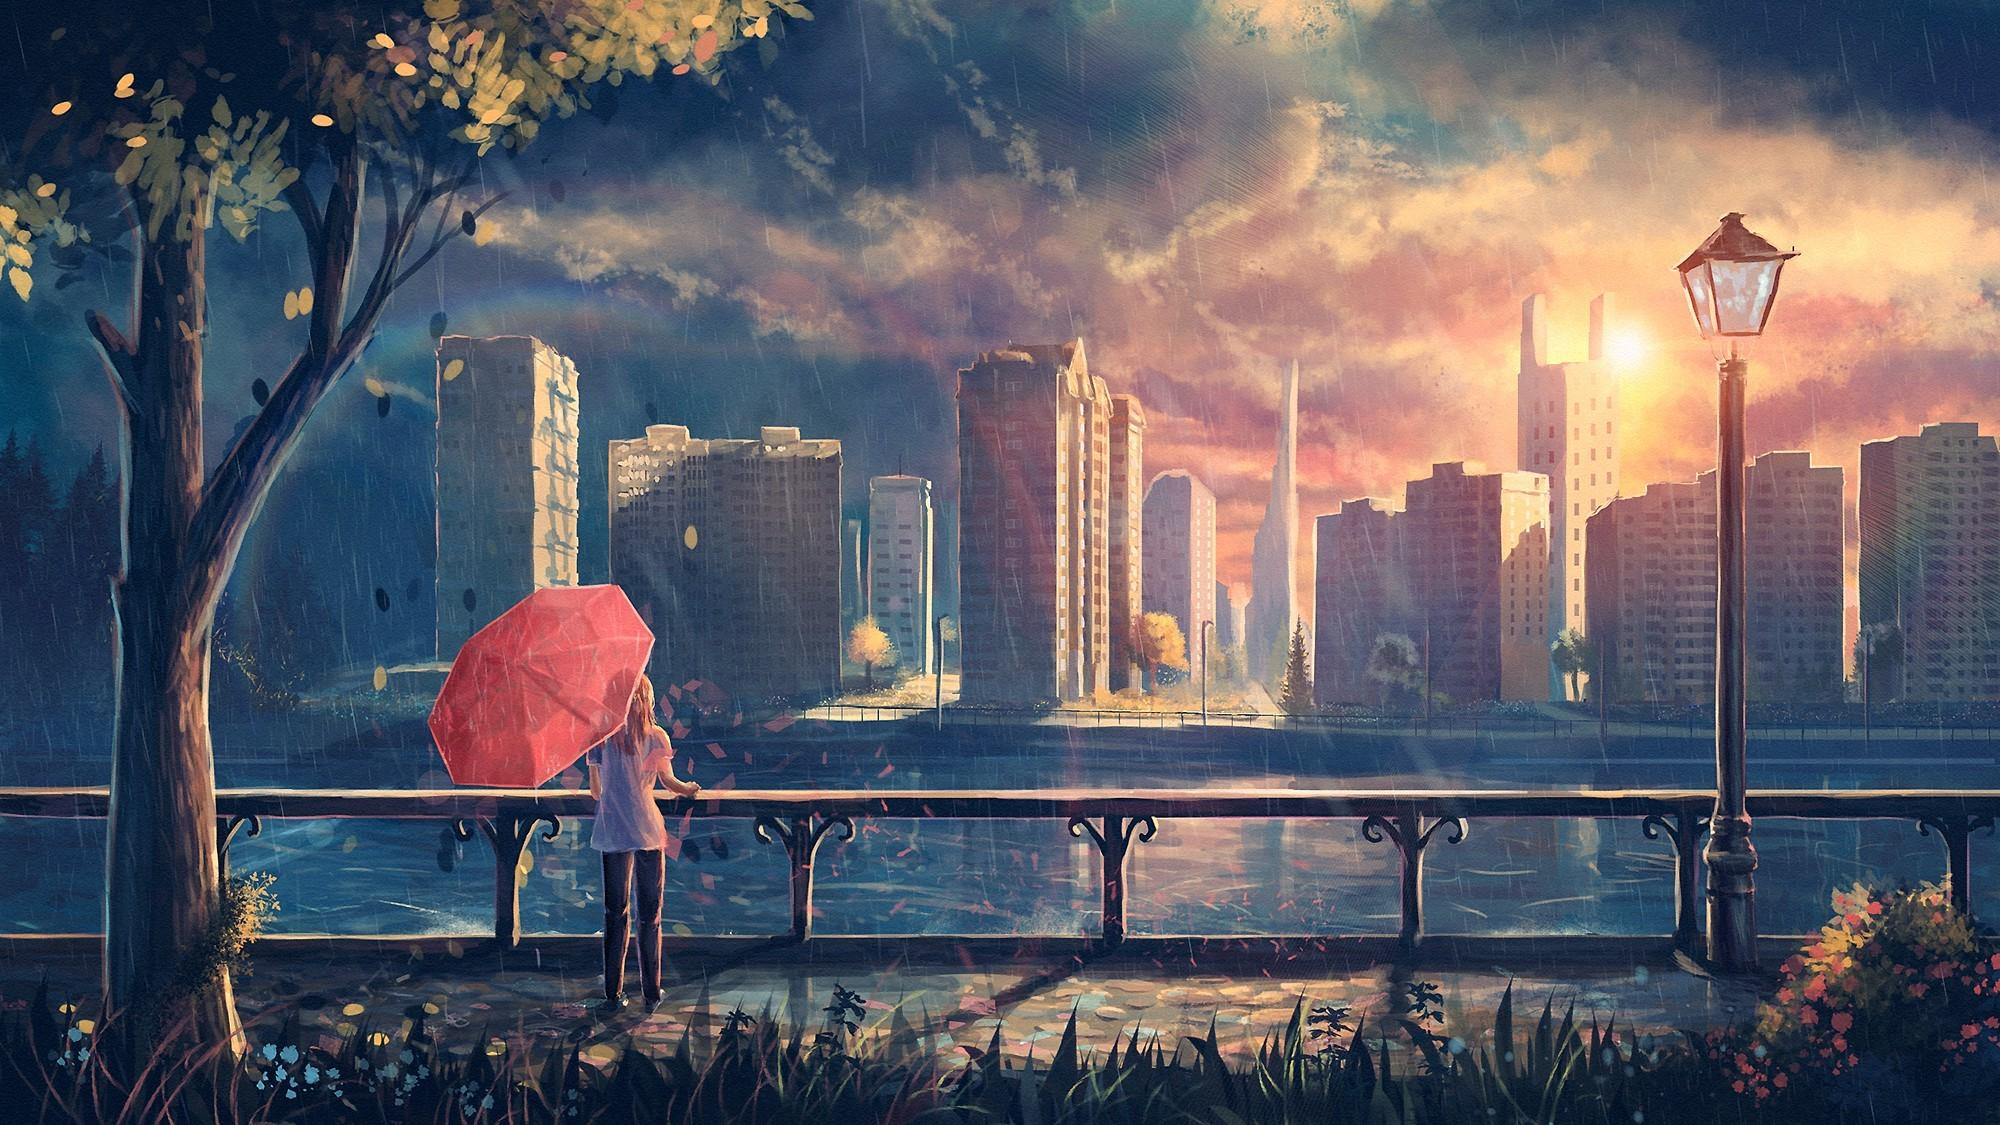 Aesthetic Anime City Wallpapers Wallpaper Cave